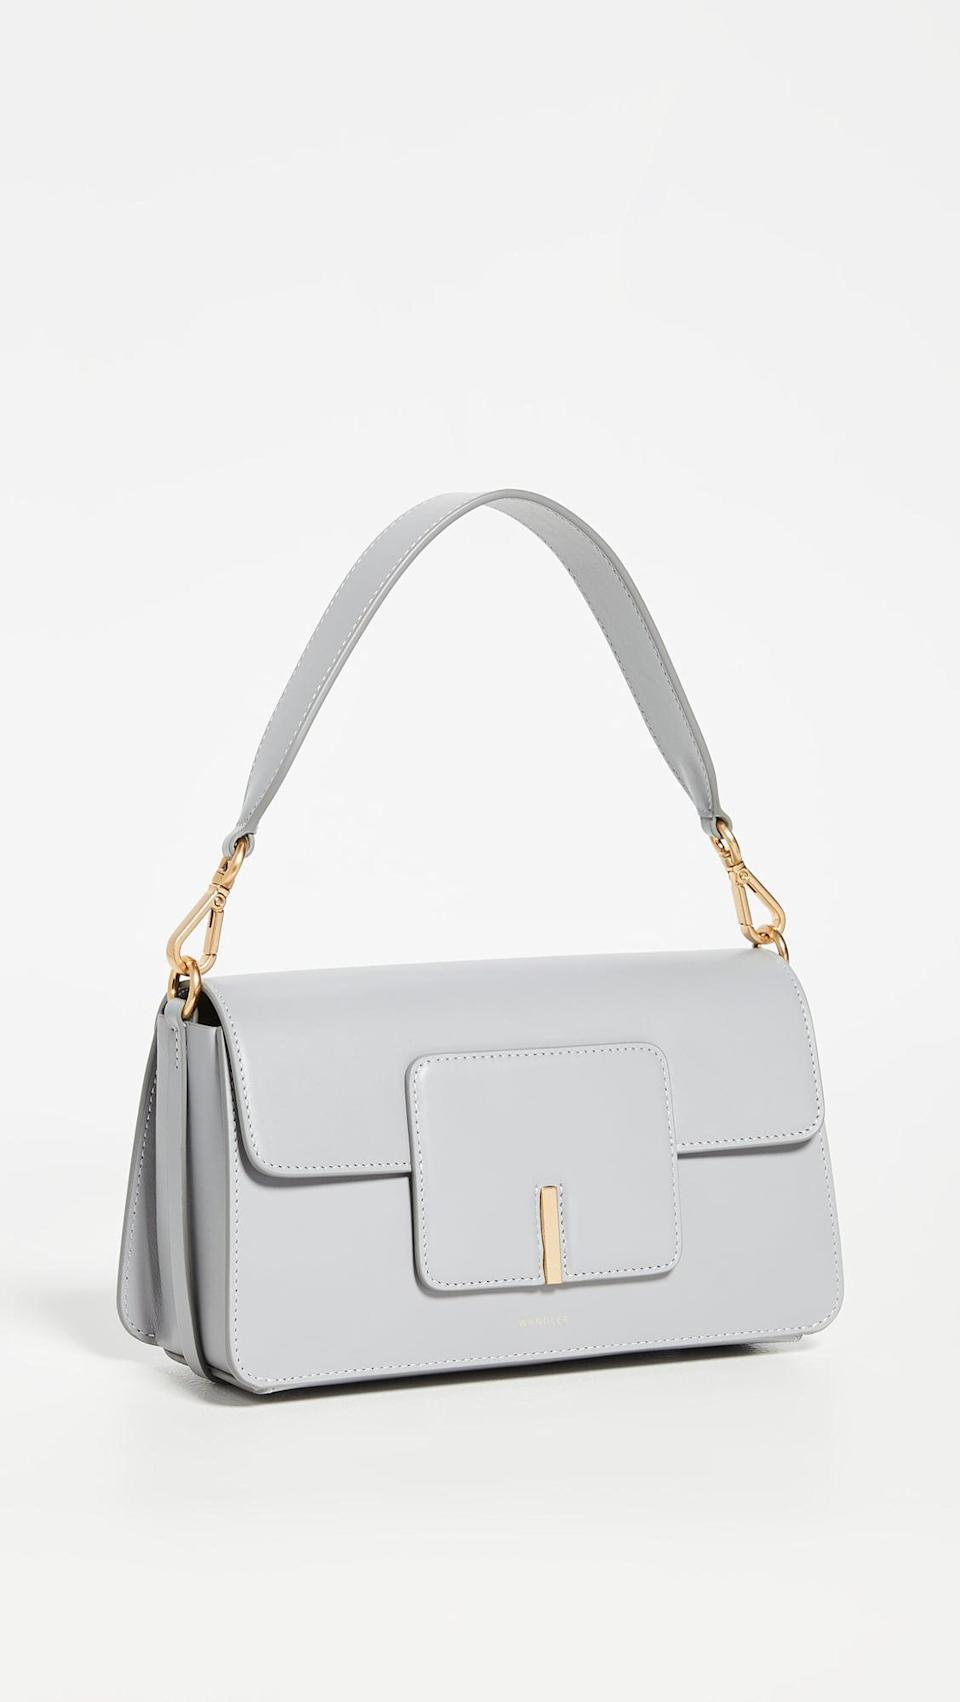 """<p><span>Wandler Georgia Bag</span> ($850)</p> <p>""""The Wandler Georgia Bag is at the top of my personal wish list this year. The cute shape, chic color, and versatile strap options make it the perfect everyday bag that's always easy to carry."""" - KJ </p>"""